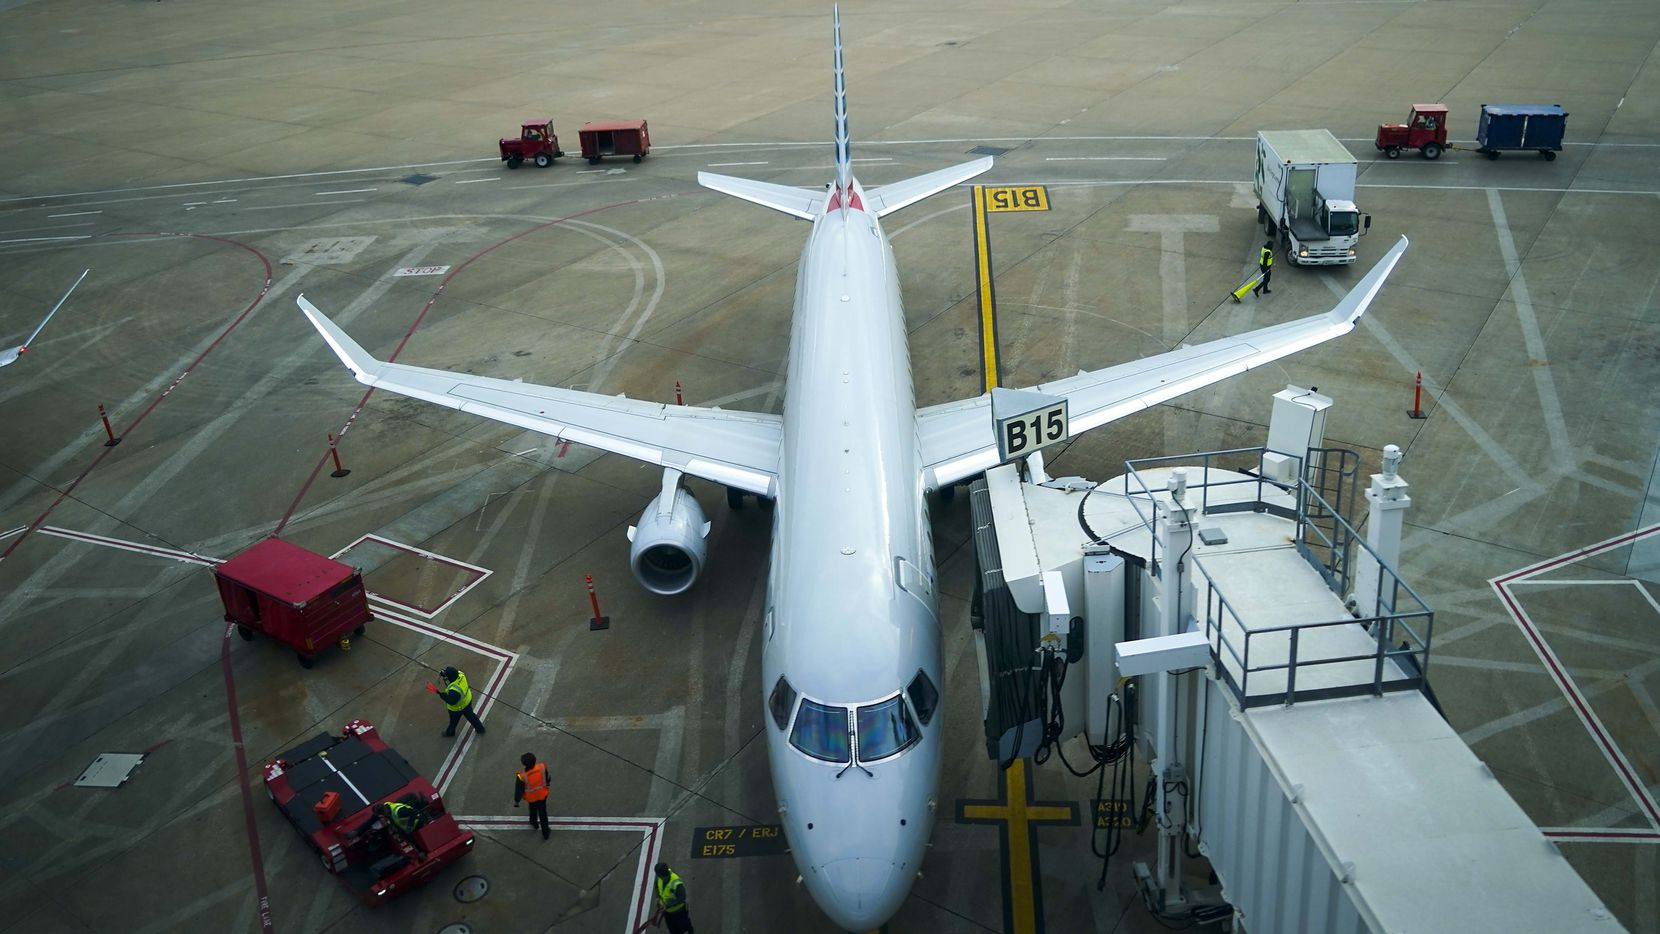 American Eagle planes parked at their gates at DFW International Airport.